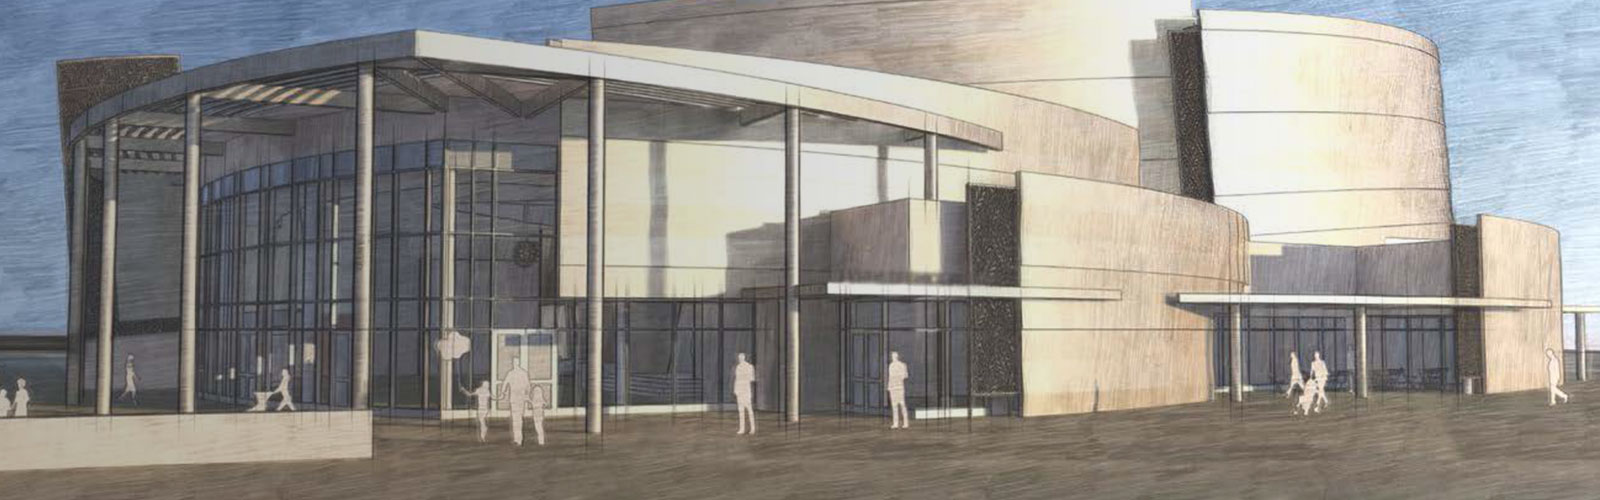 draft drawing of performing arts center